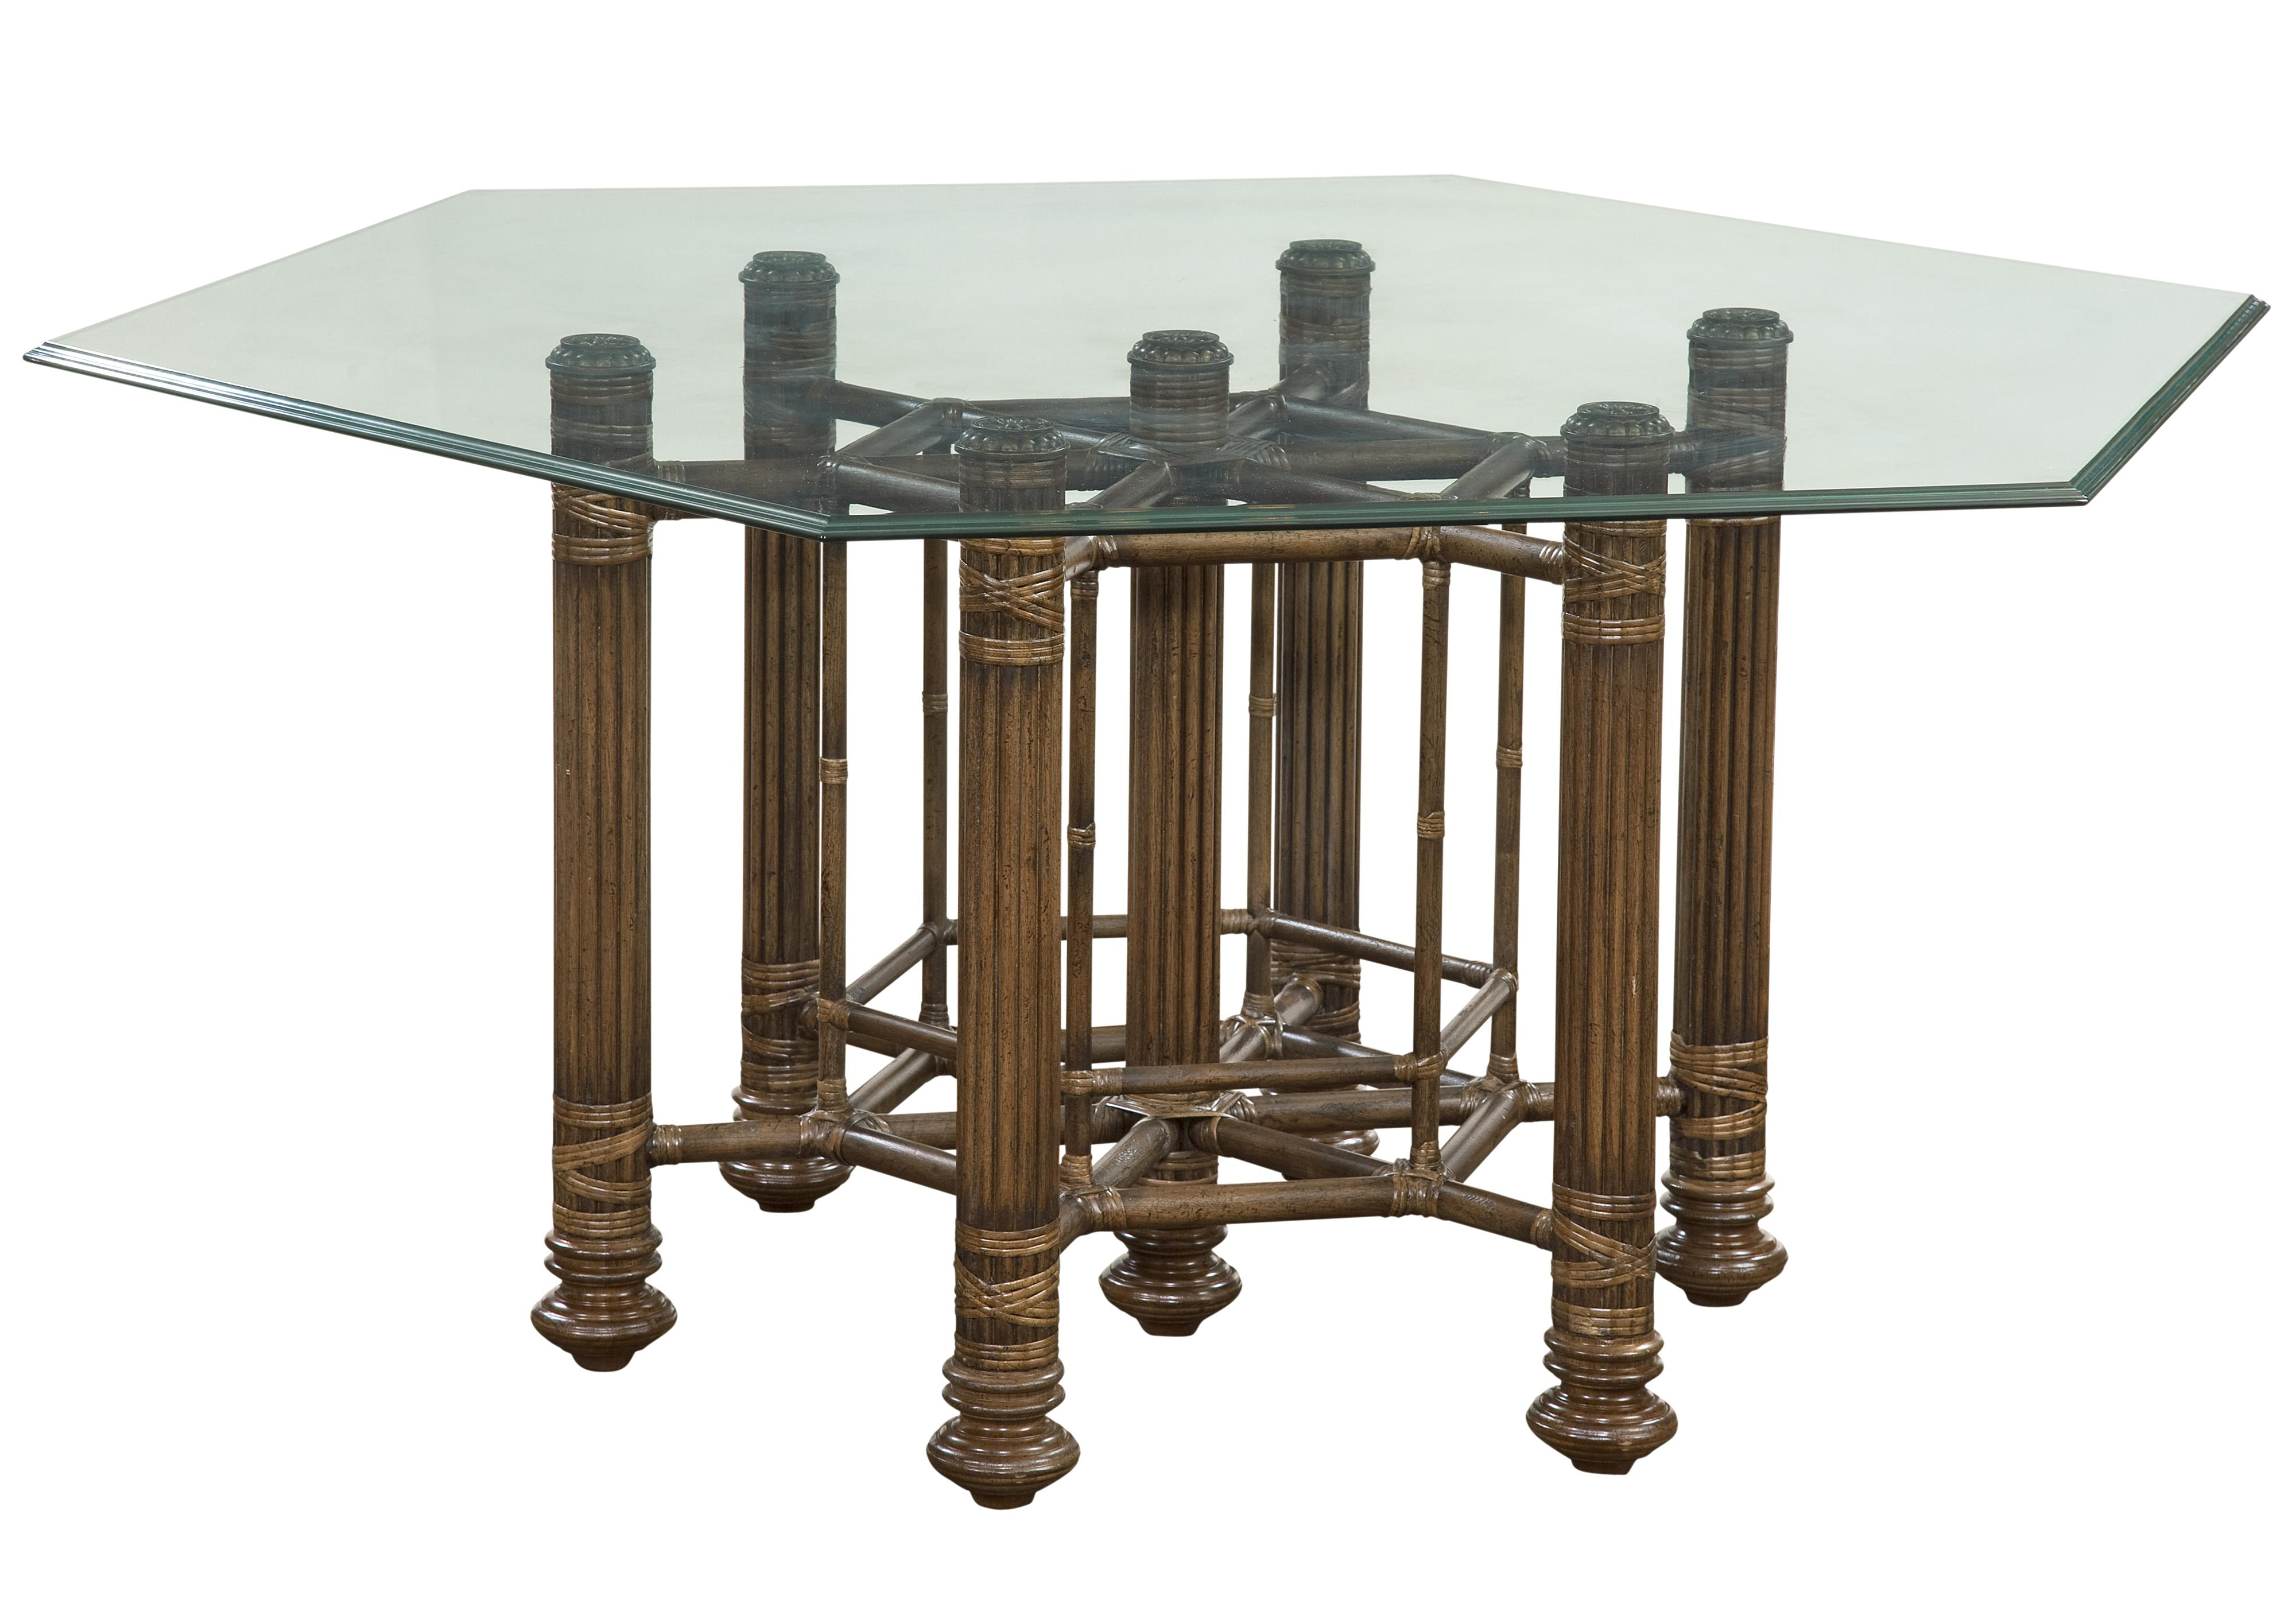 Makira dining table with hexagon glass table top by fine furniture